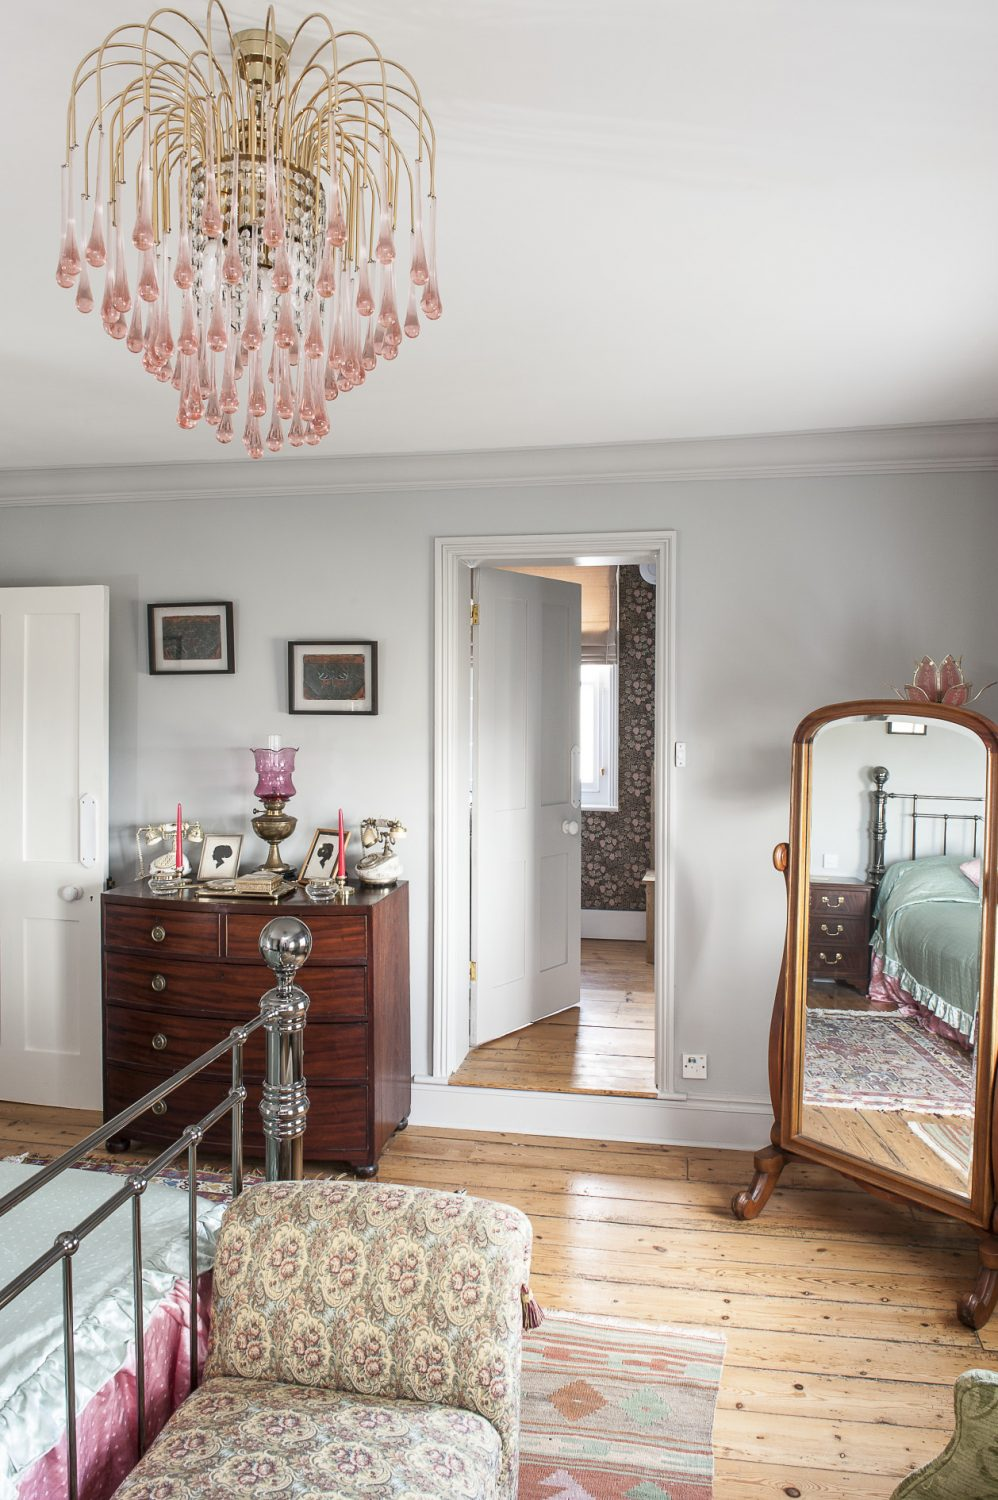 Off the landing is the couple's guest suite and its centrepiece, a large and unusual gun metal 'brass' bed. In a corner is a magnificent domed chest which once belonged to Manfred, whilst the walls are home to a collection of artist Helen Hunt's lepidopterology studies